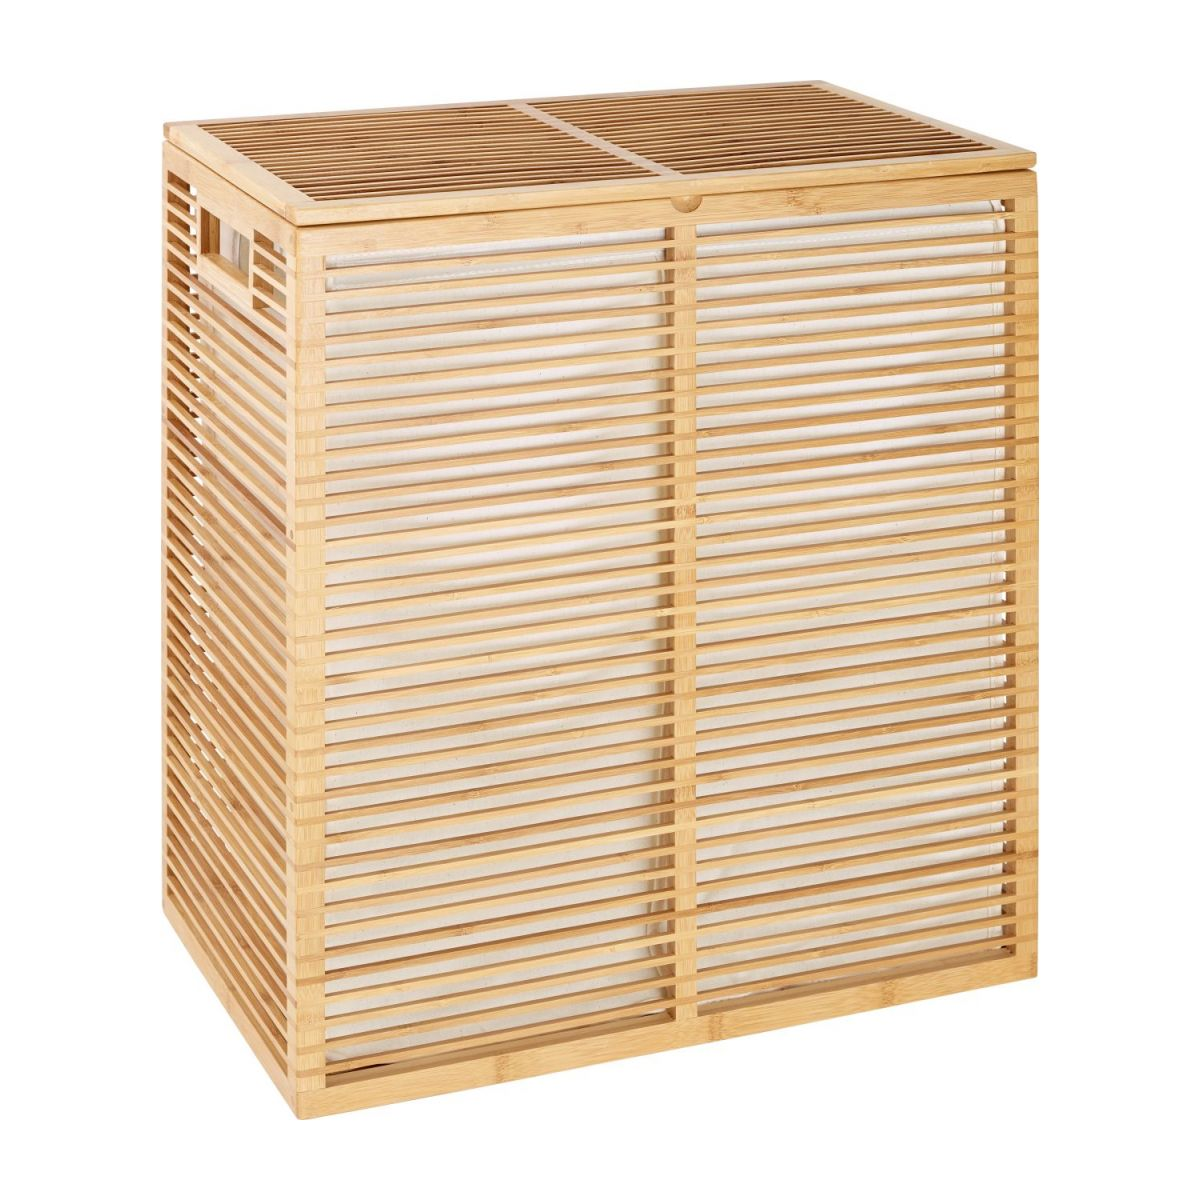 Laundry basket made of bamboo n°1